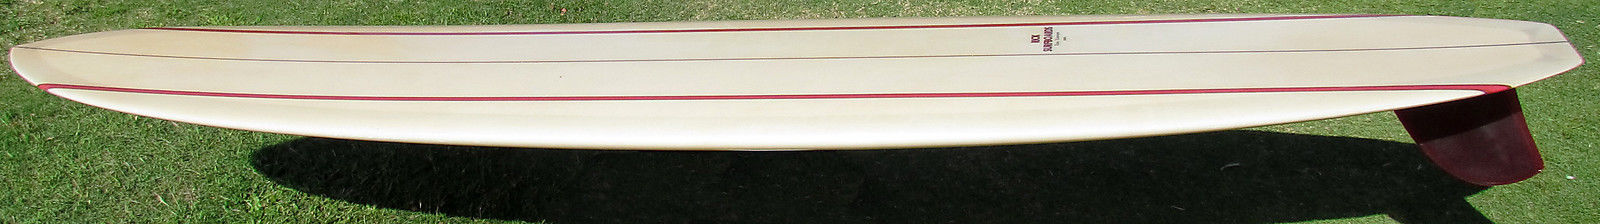 Rick Barry Kanaiaupuni Model Longboard Restored 1